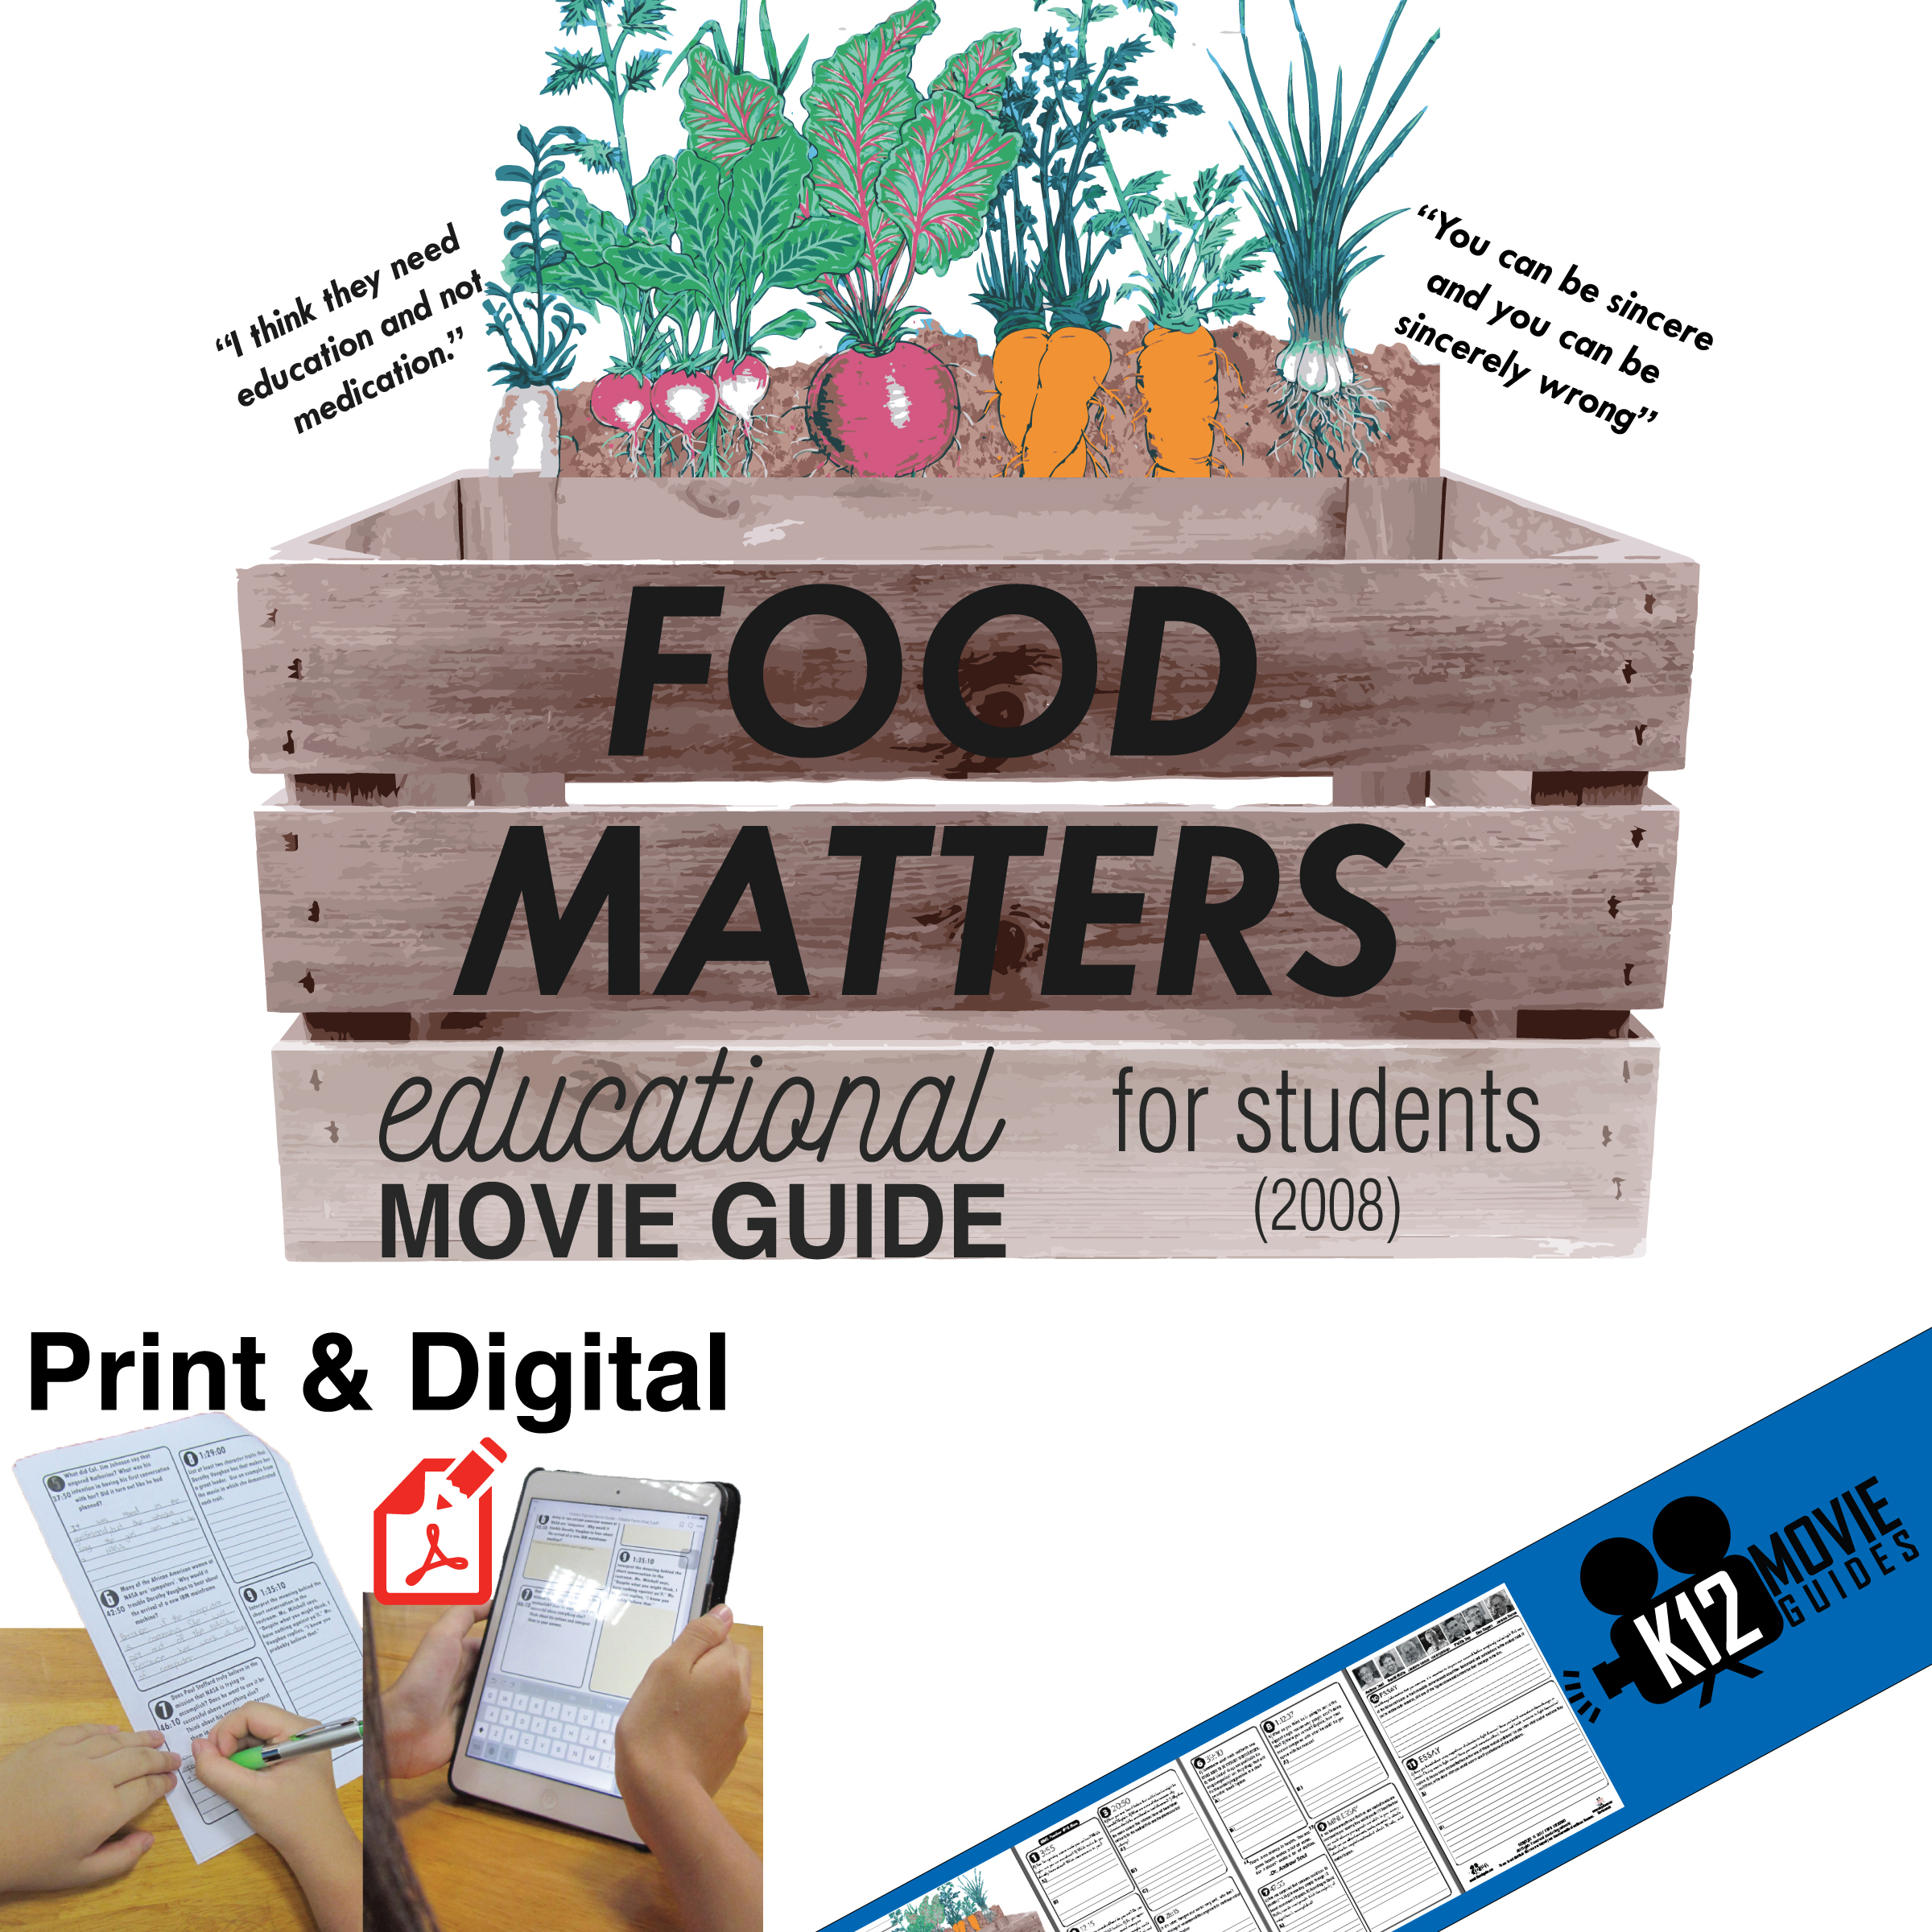 Food Matters Movie Guide (2008) Cover